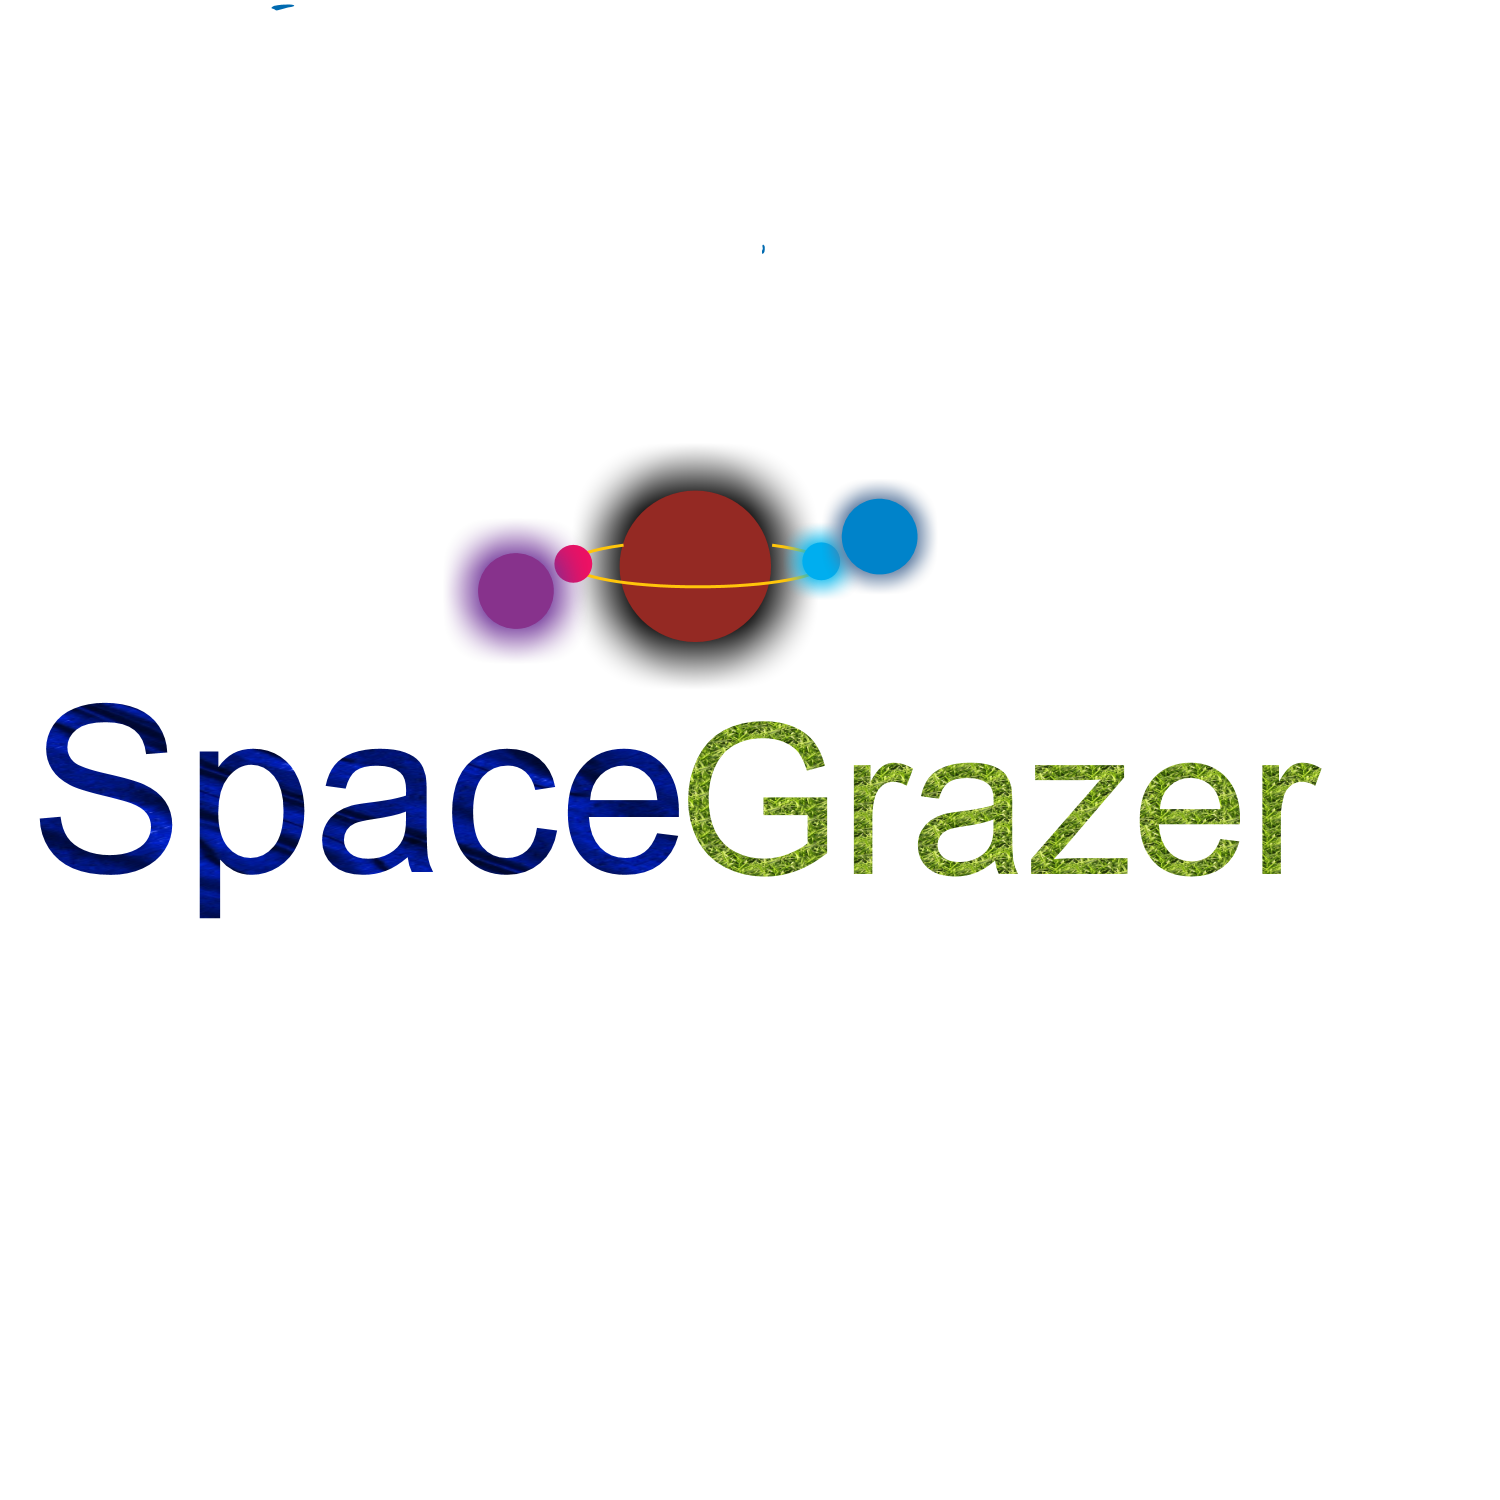 Logo Design by Melanie Fitzpatrick - Entry No. 73 in the Logo Design Contest Fun Logo Design for Spacegrazer.